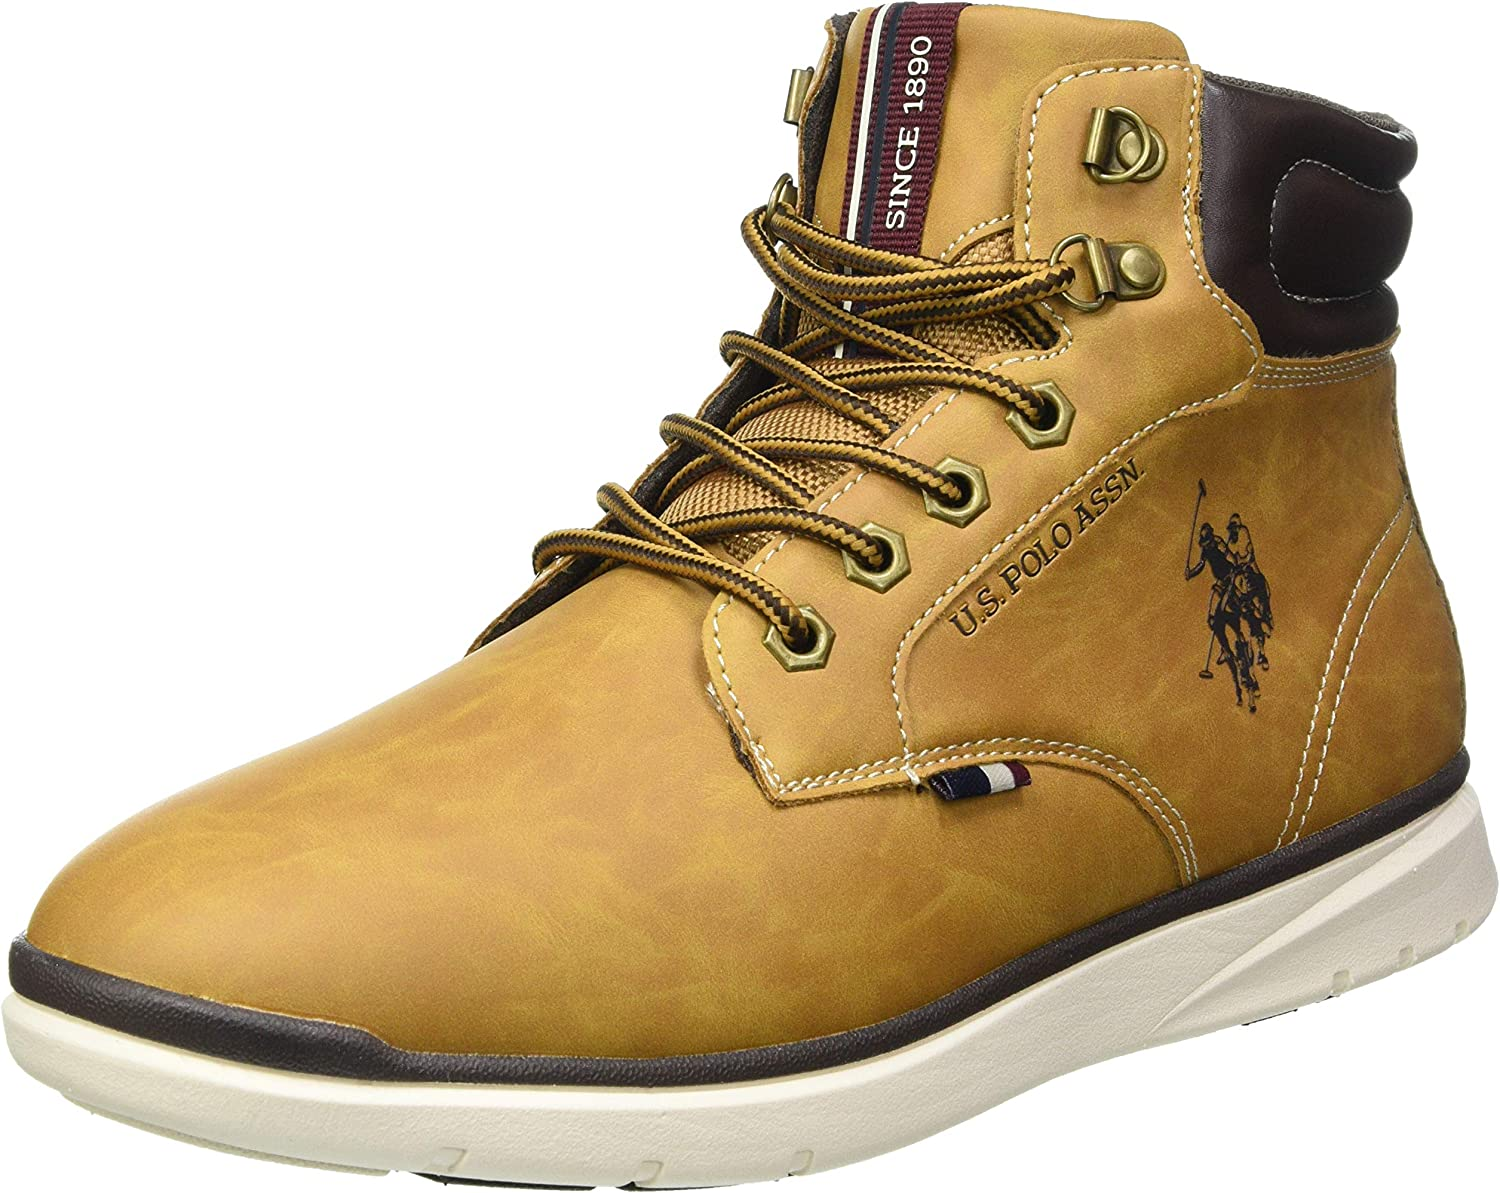 U.S.POLO ASSN. Max 82% OFF New products world's highest quality popular Men's Flat Oxford Gymnastics